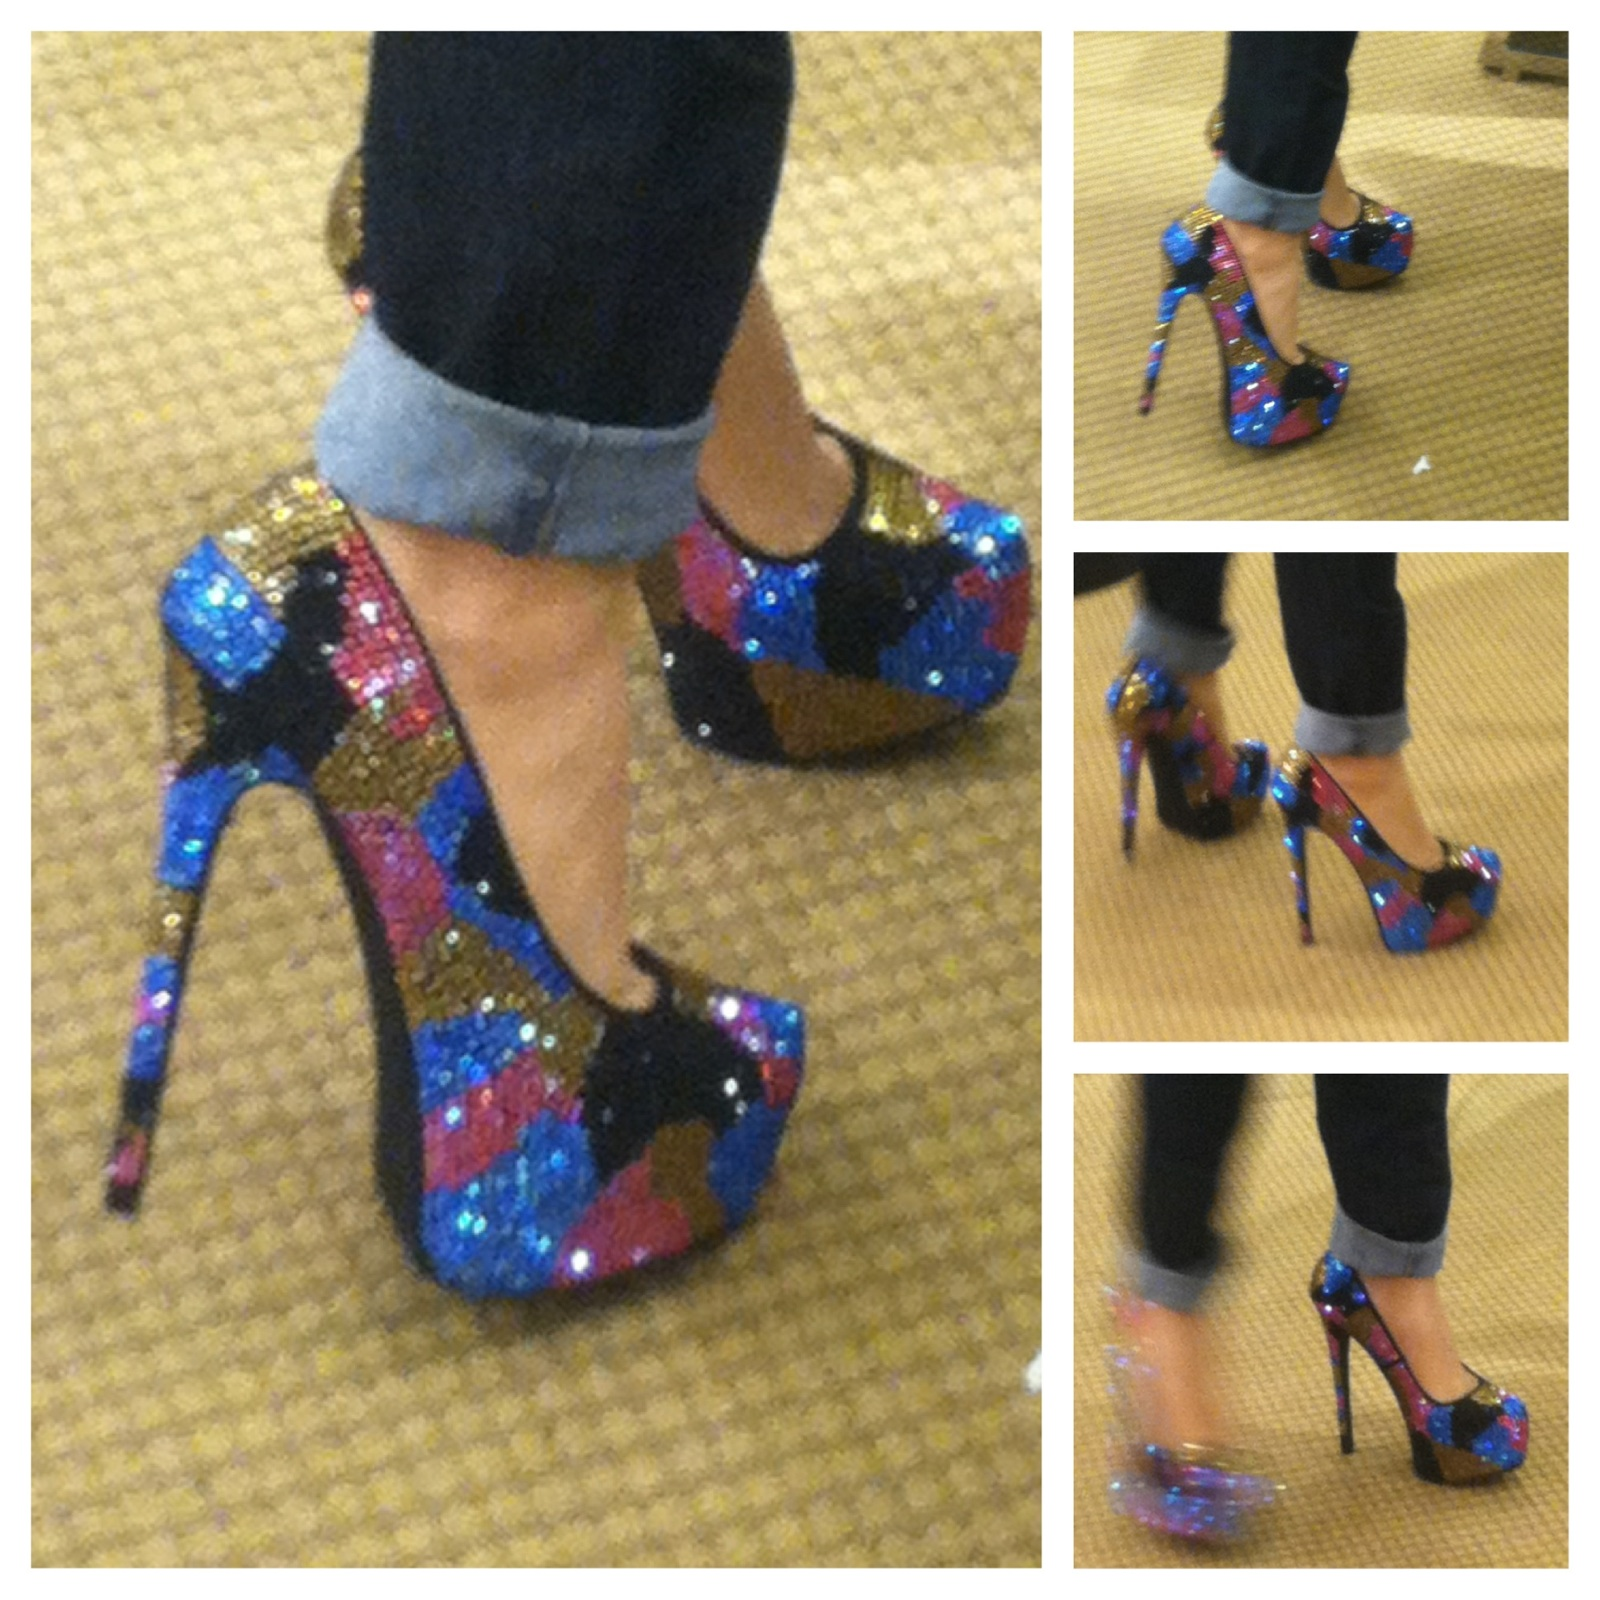 ca4e0ac04fe I must say these Steve Madden pumps are my favorite pumps yet. When I saw  them for the first time